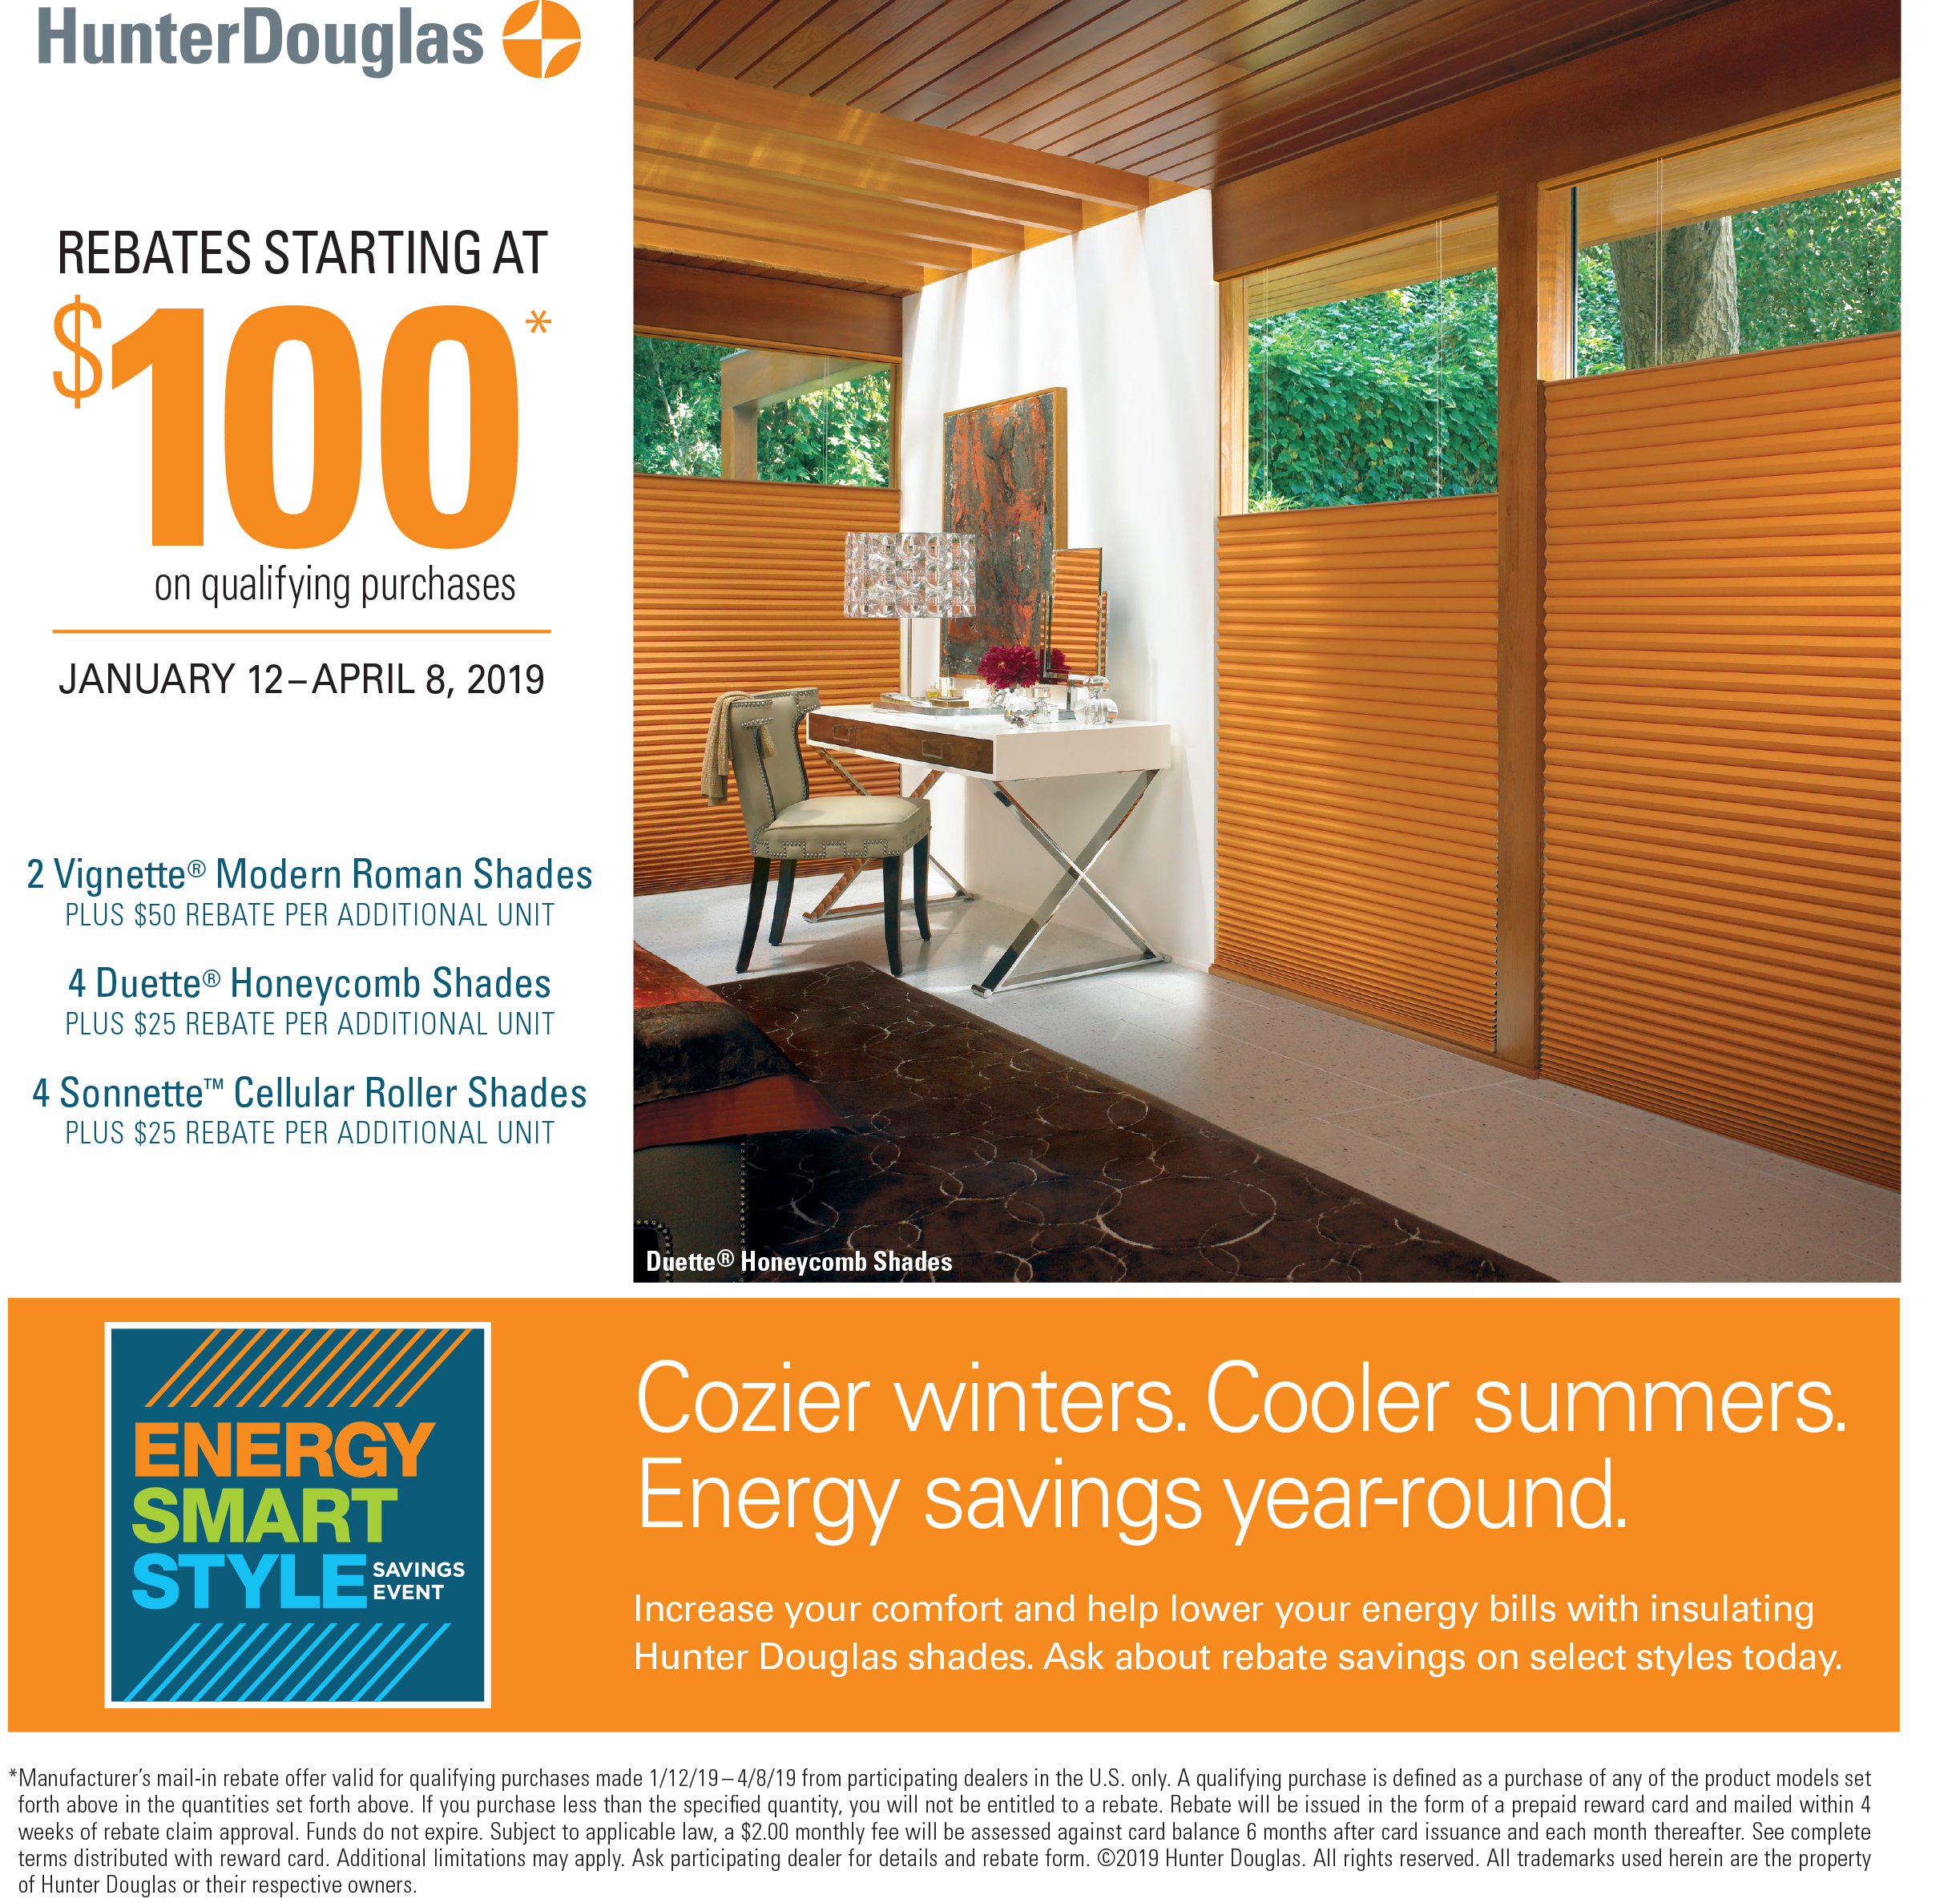 hunter-douglas-promo